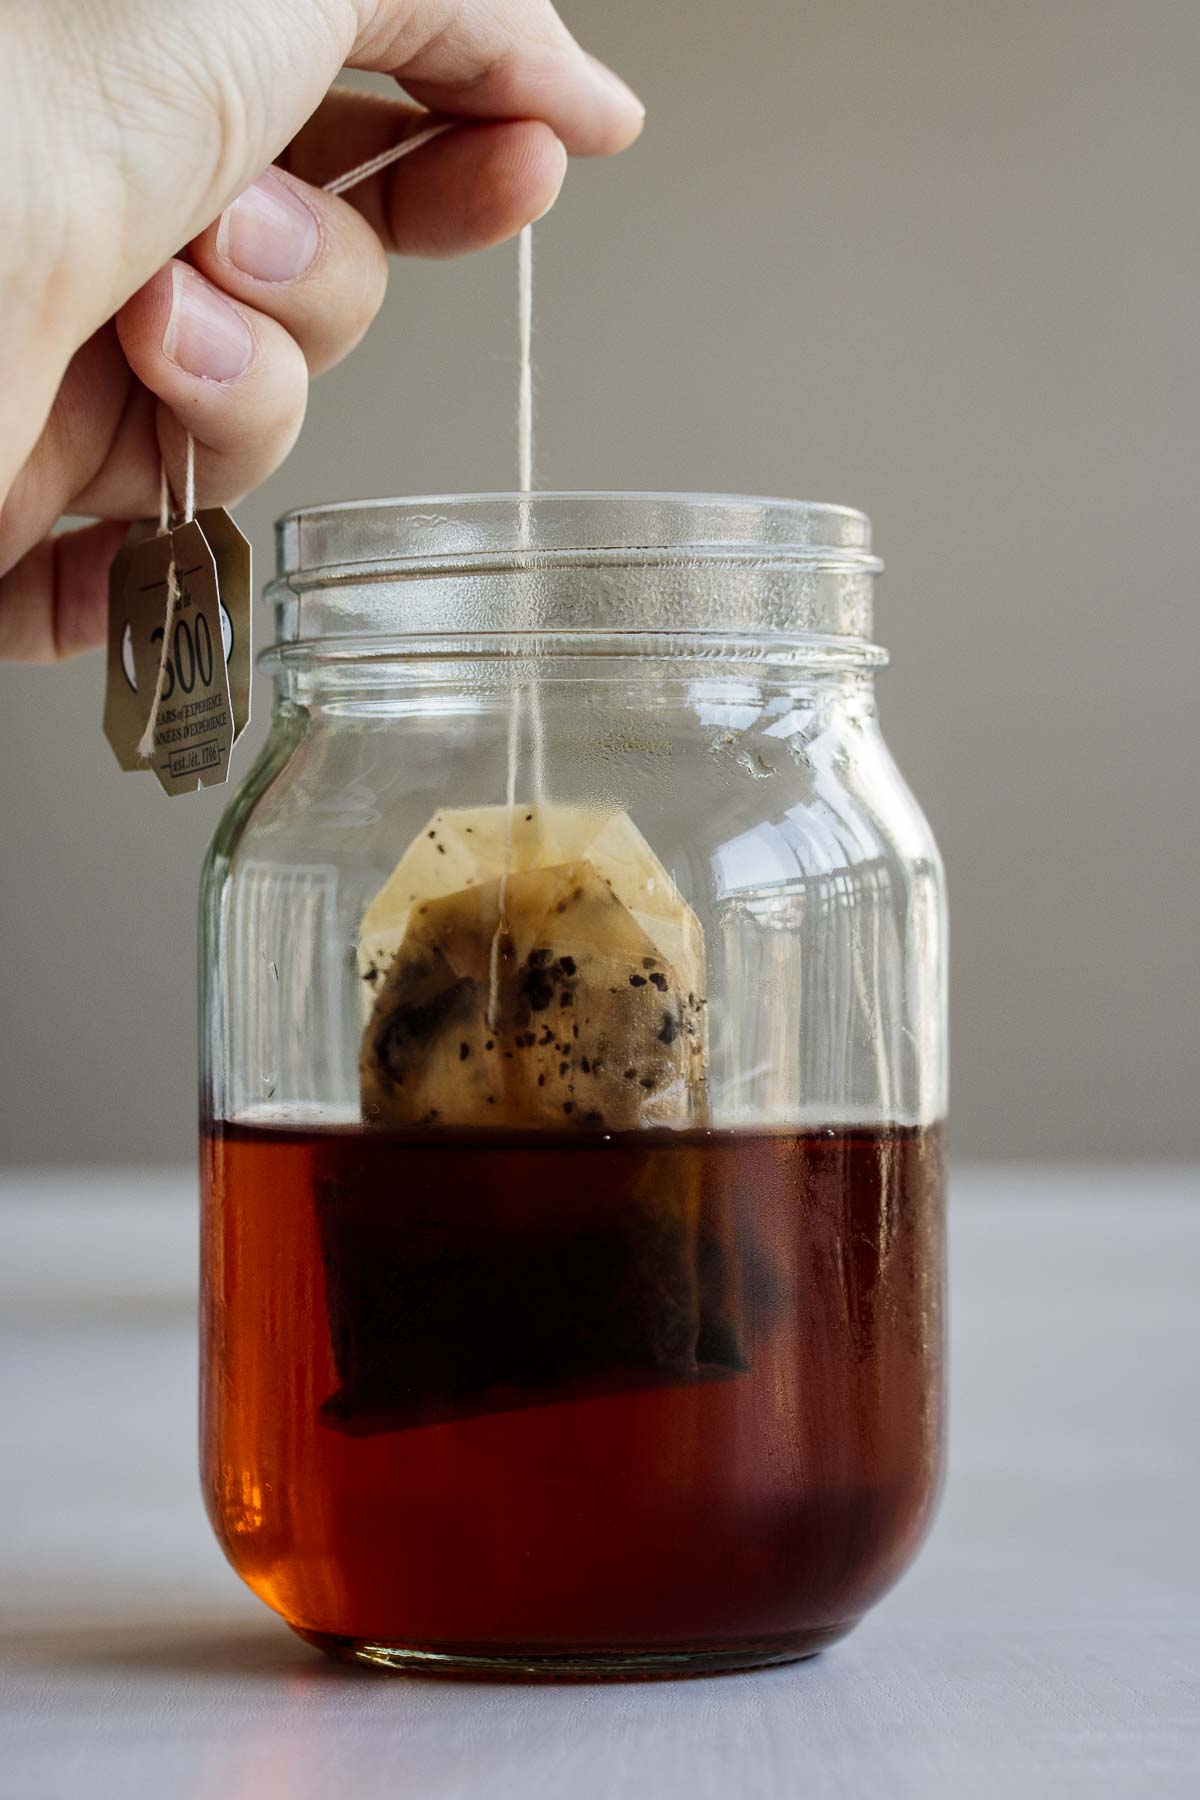 Tea bags being removed from cold brew tea.